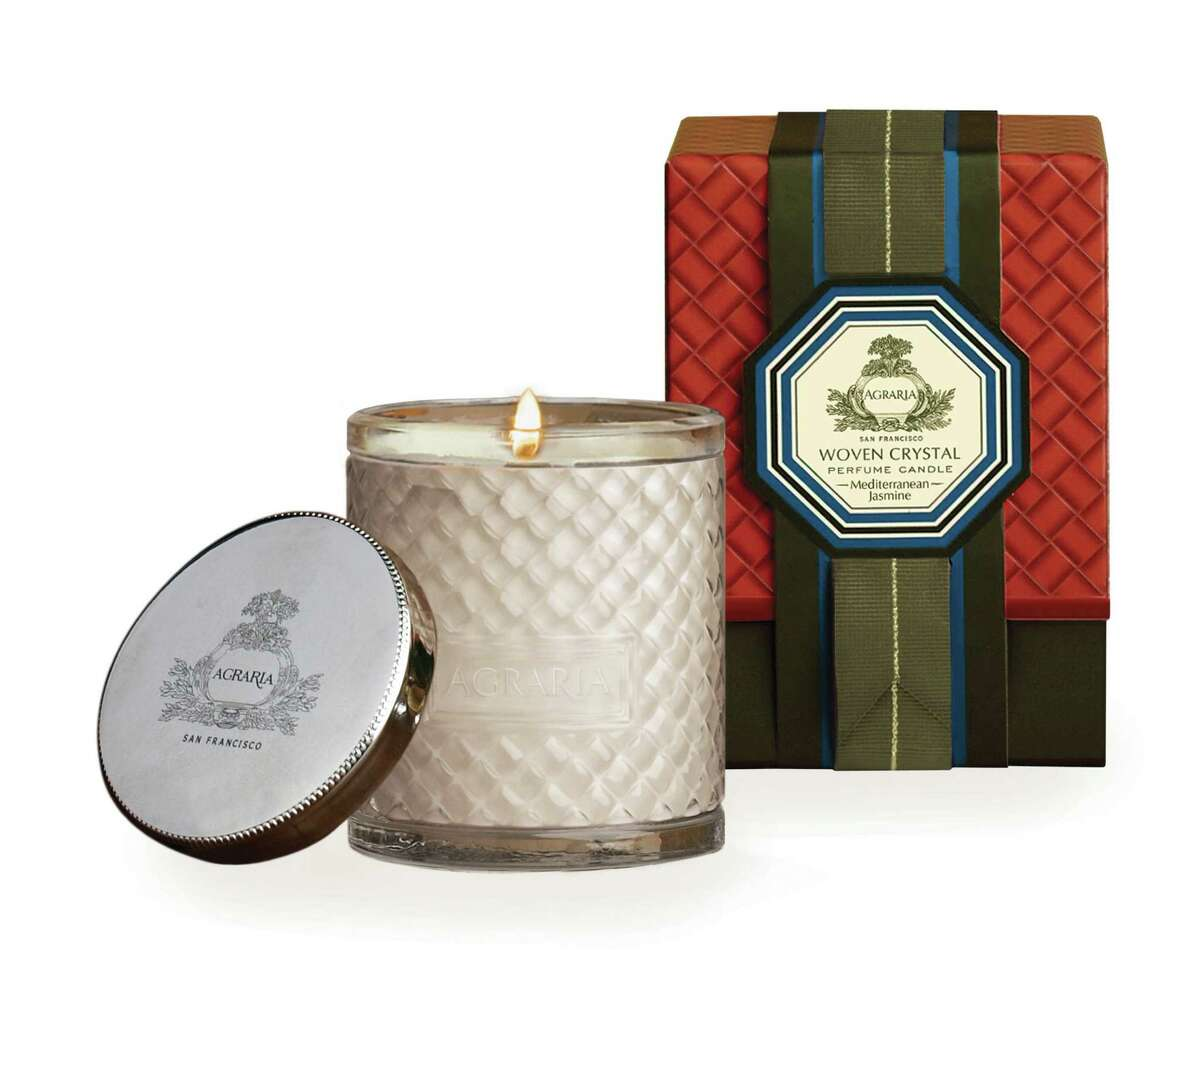 Agraria Mediterranean Jasmine Candle: The scent takes you to a flower garden. $35 to $55. Also, check out the fragrance diffusers and bath scents. Available at agrariahome.com, SaksFifthAvenue.com and NeimanMarcus.com.